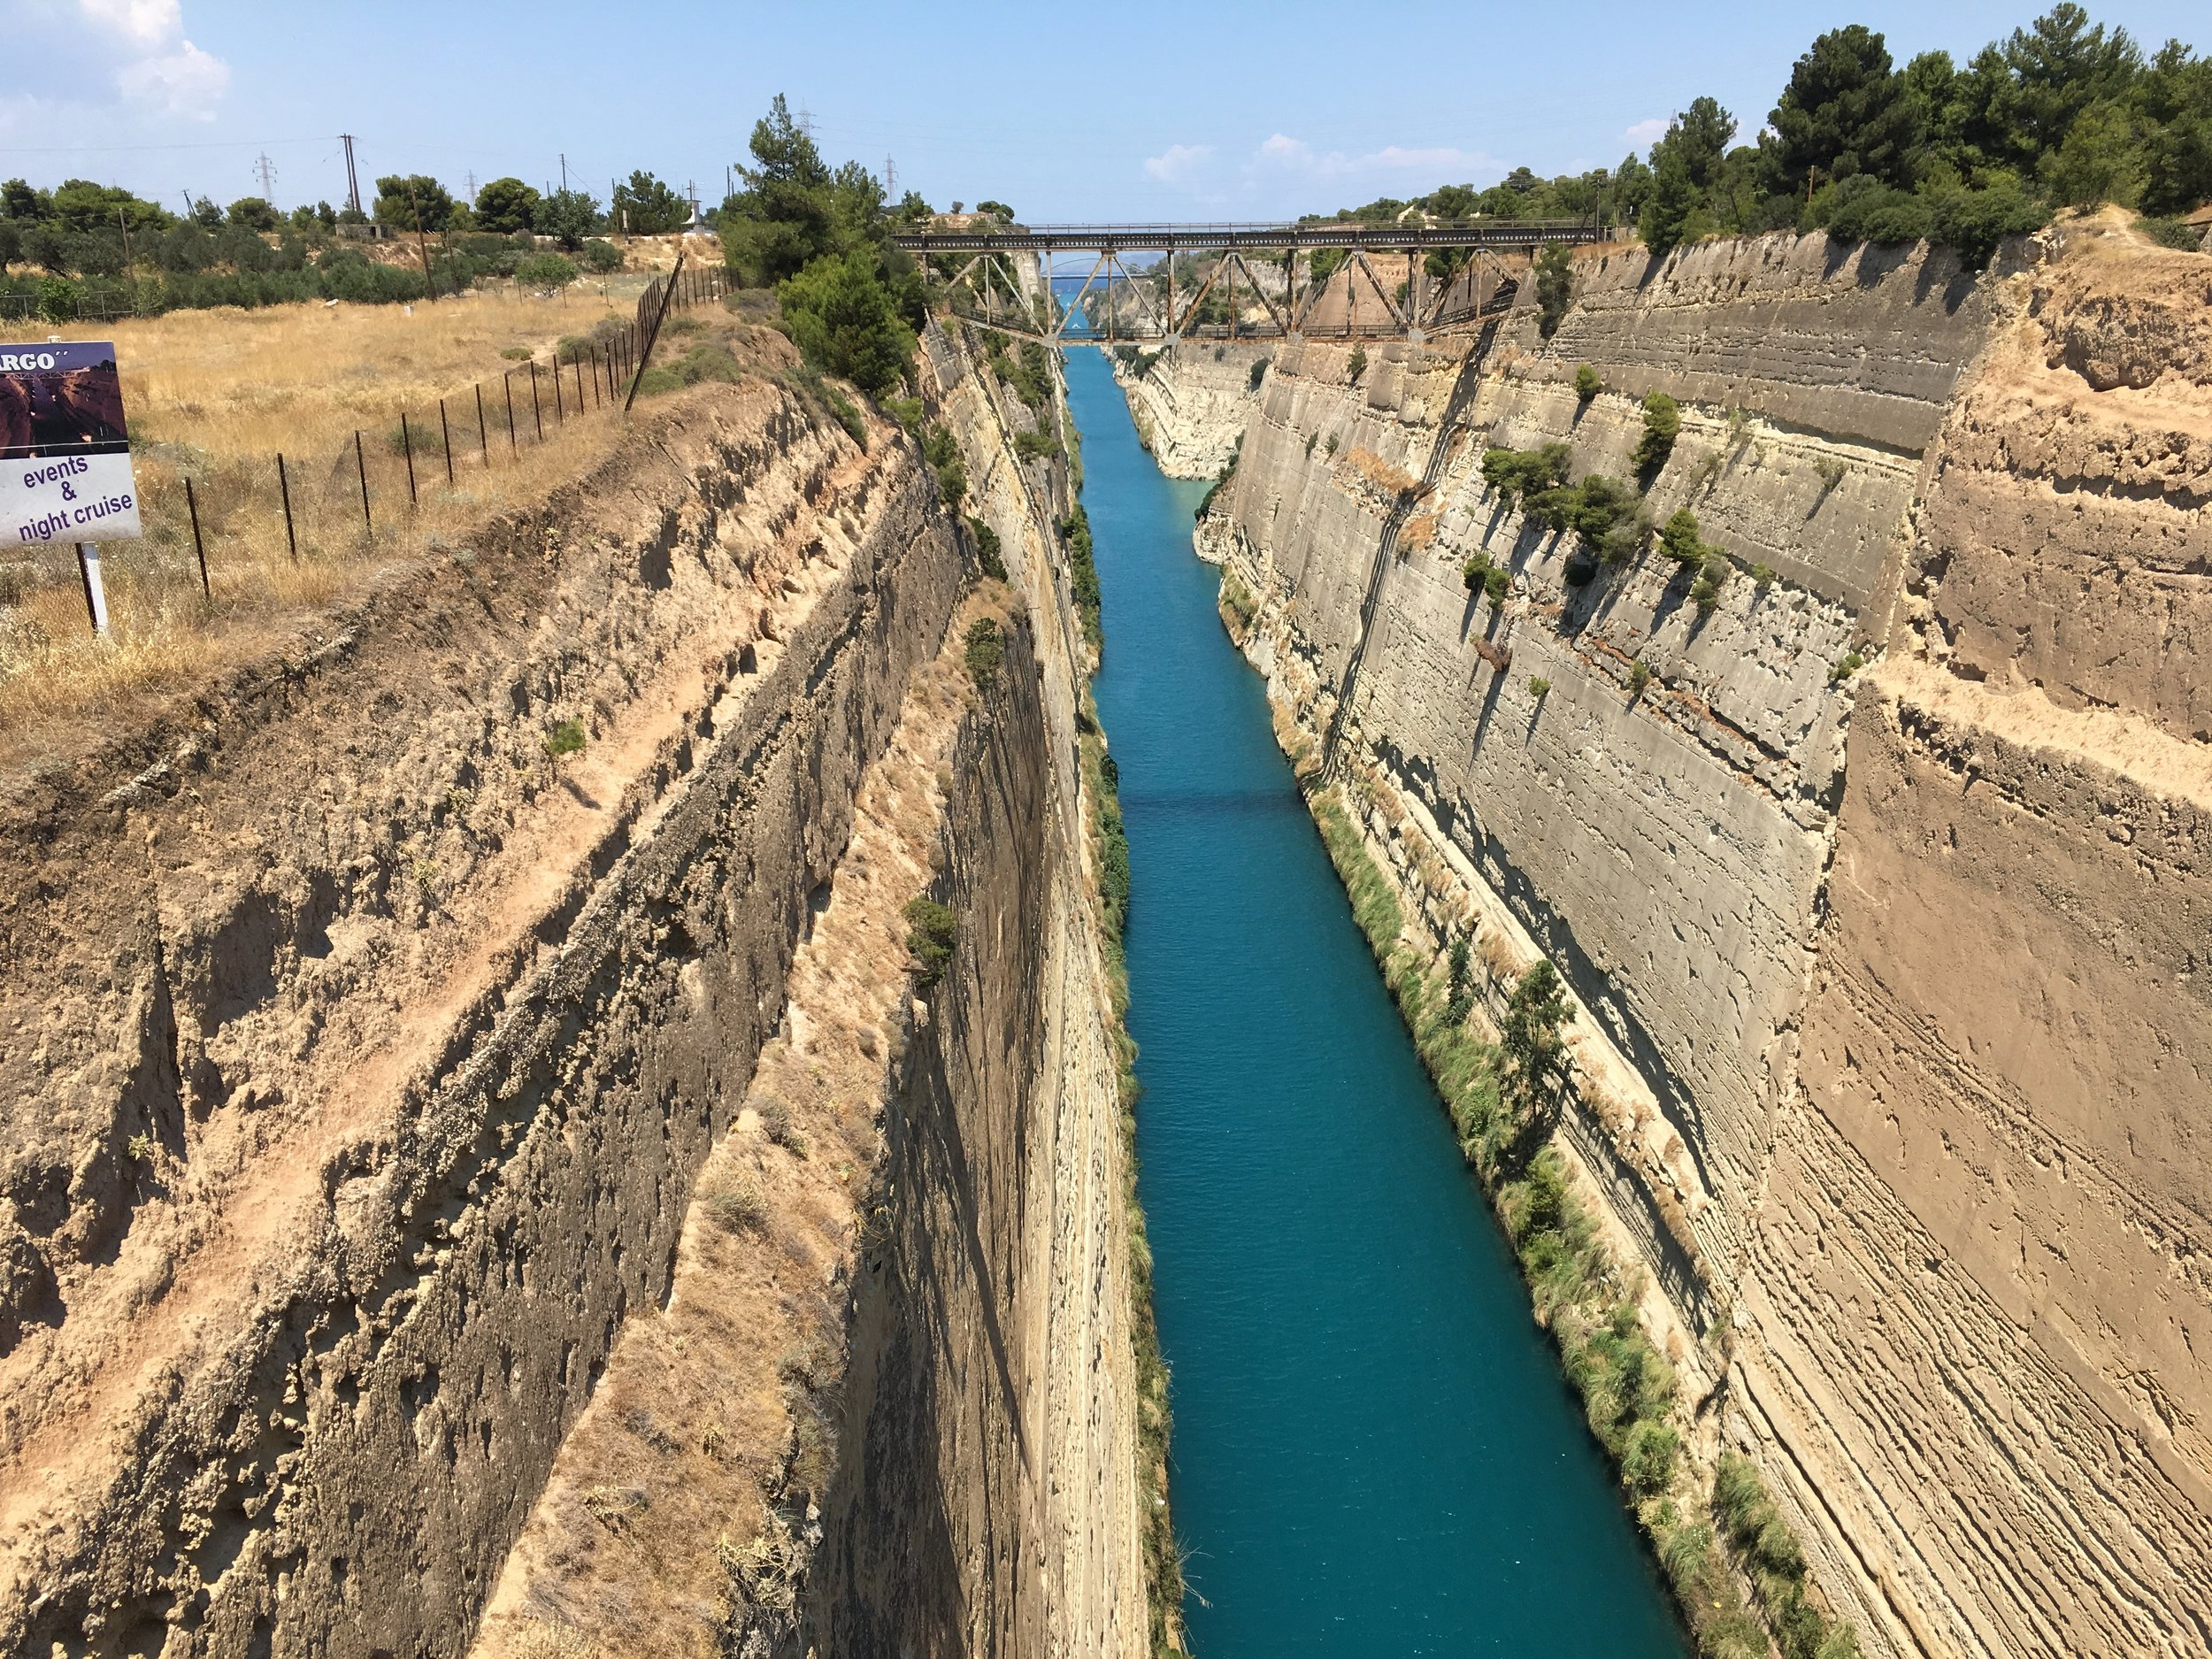 The Divide Between Attica and the Peloponnese - The canal at Corinth, the Las Vegas of the ancient world.